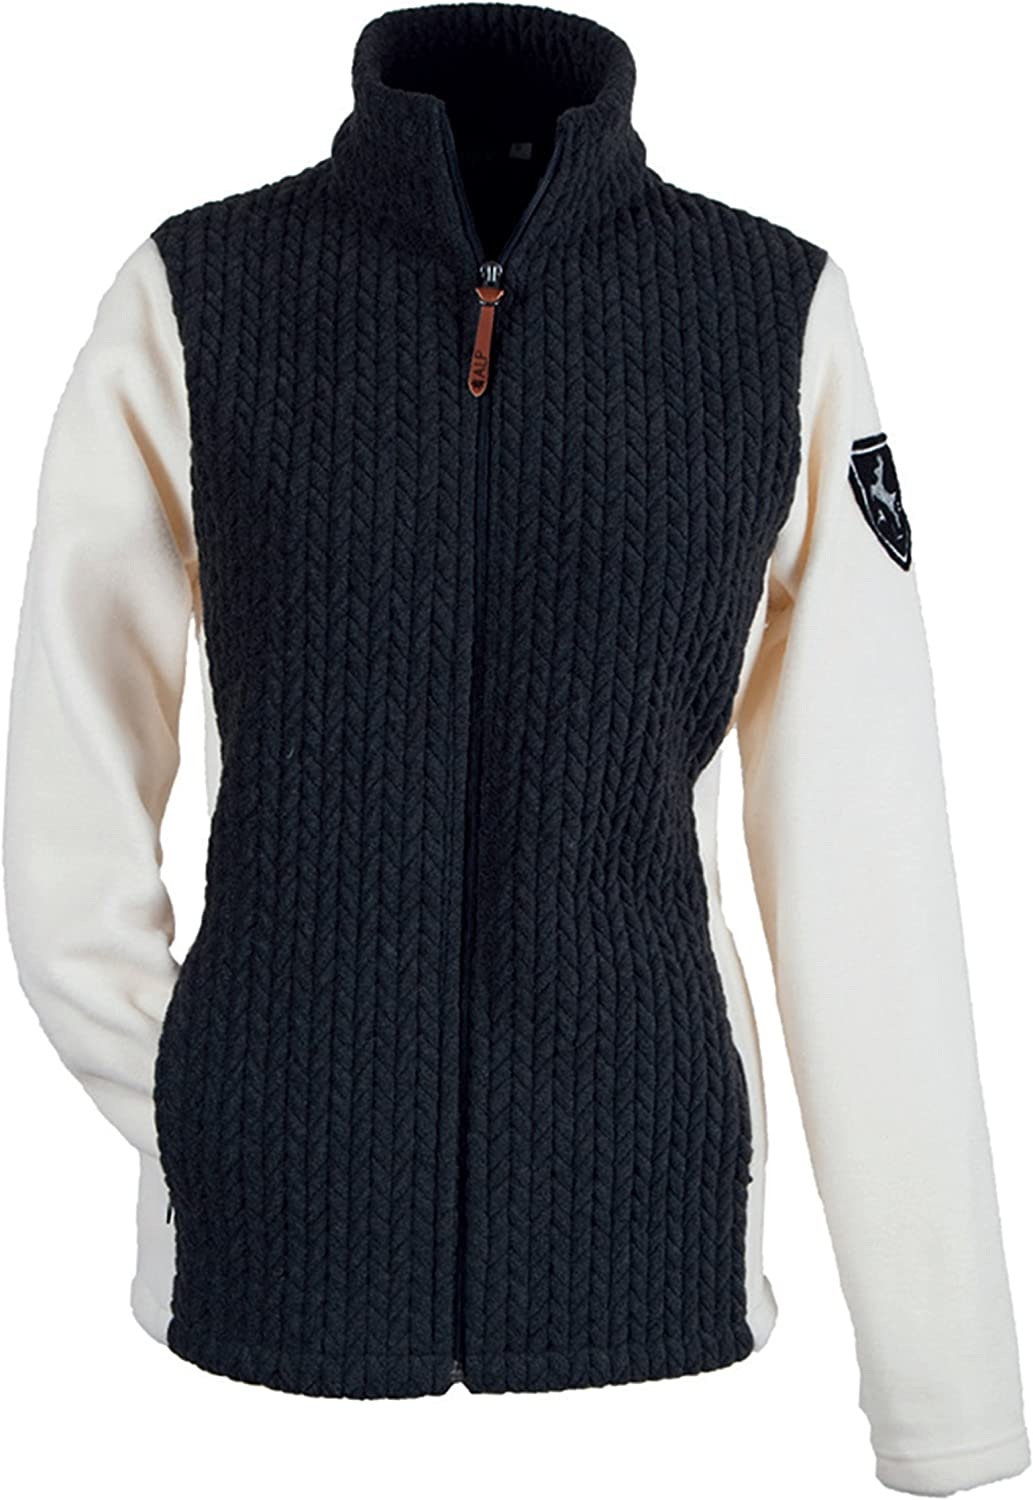 Alp by Brush Ladies Fleece Jacket with Quilted Contrasting Inserts